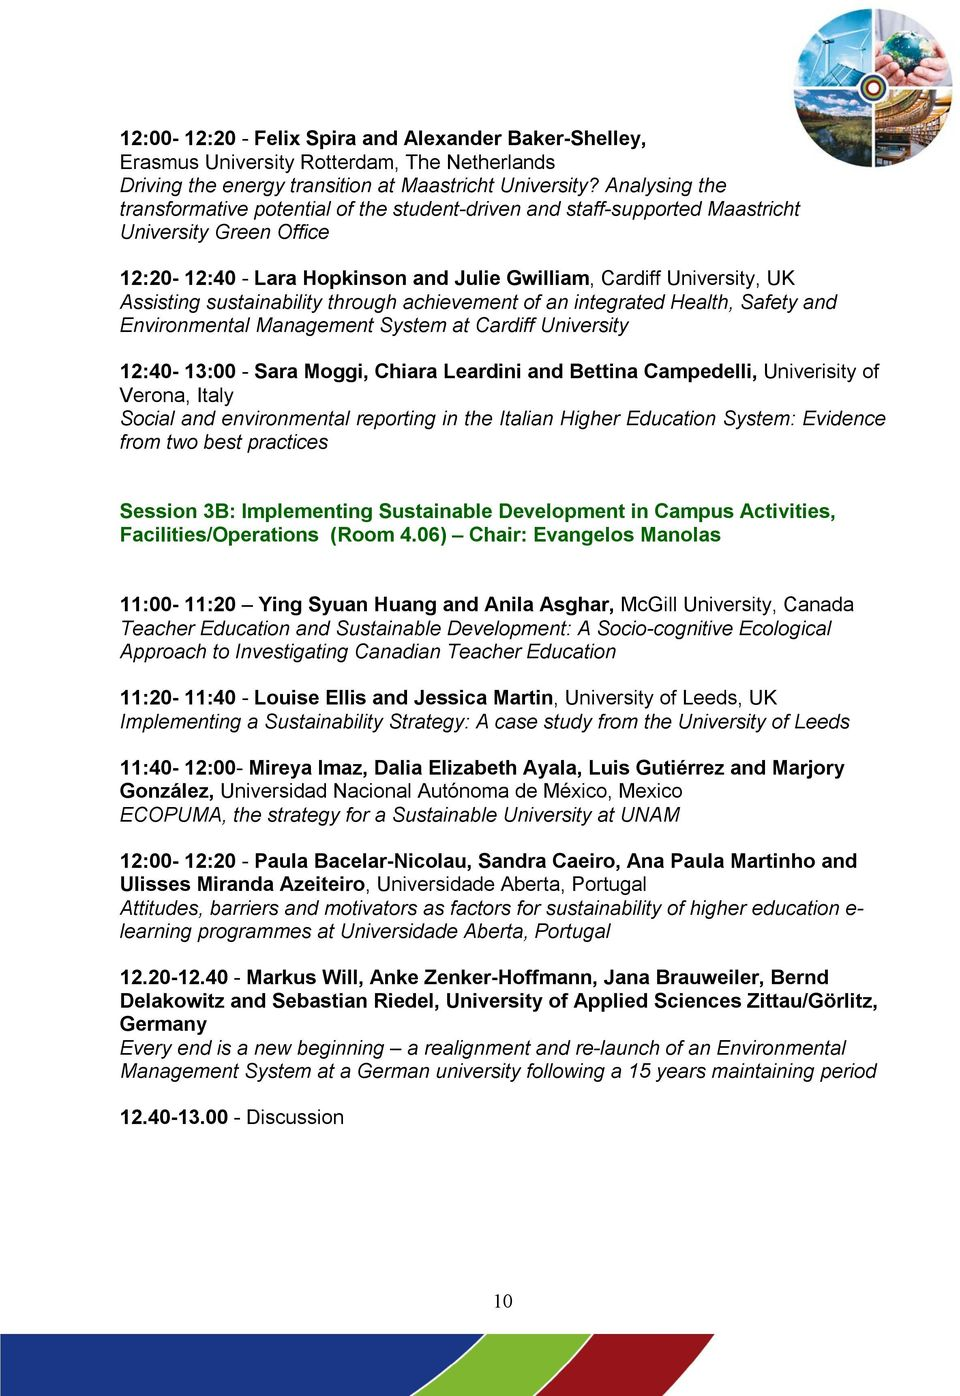 sustainability through achievement of an integrated Health, Safety and Environmental Management System at Cardiff University 12:40-13:00 - Sara Moggi, Chiara Leardini and Bettina Campedelli,